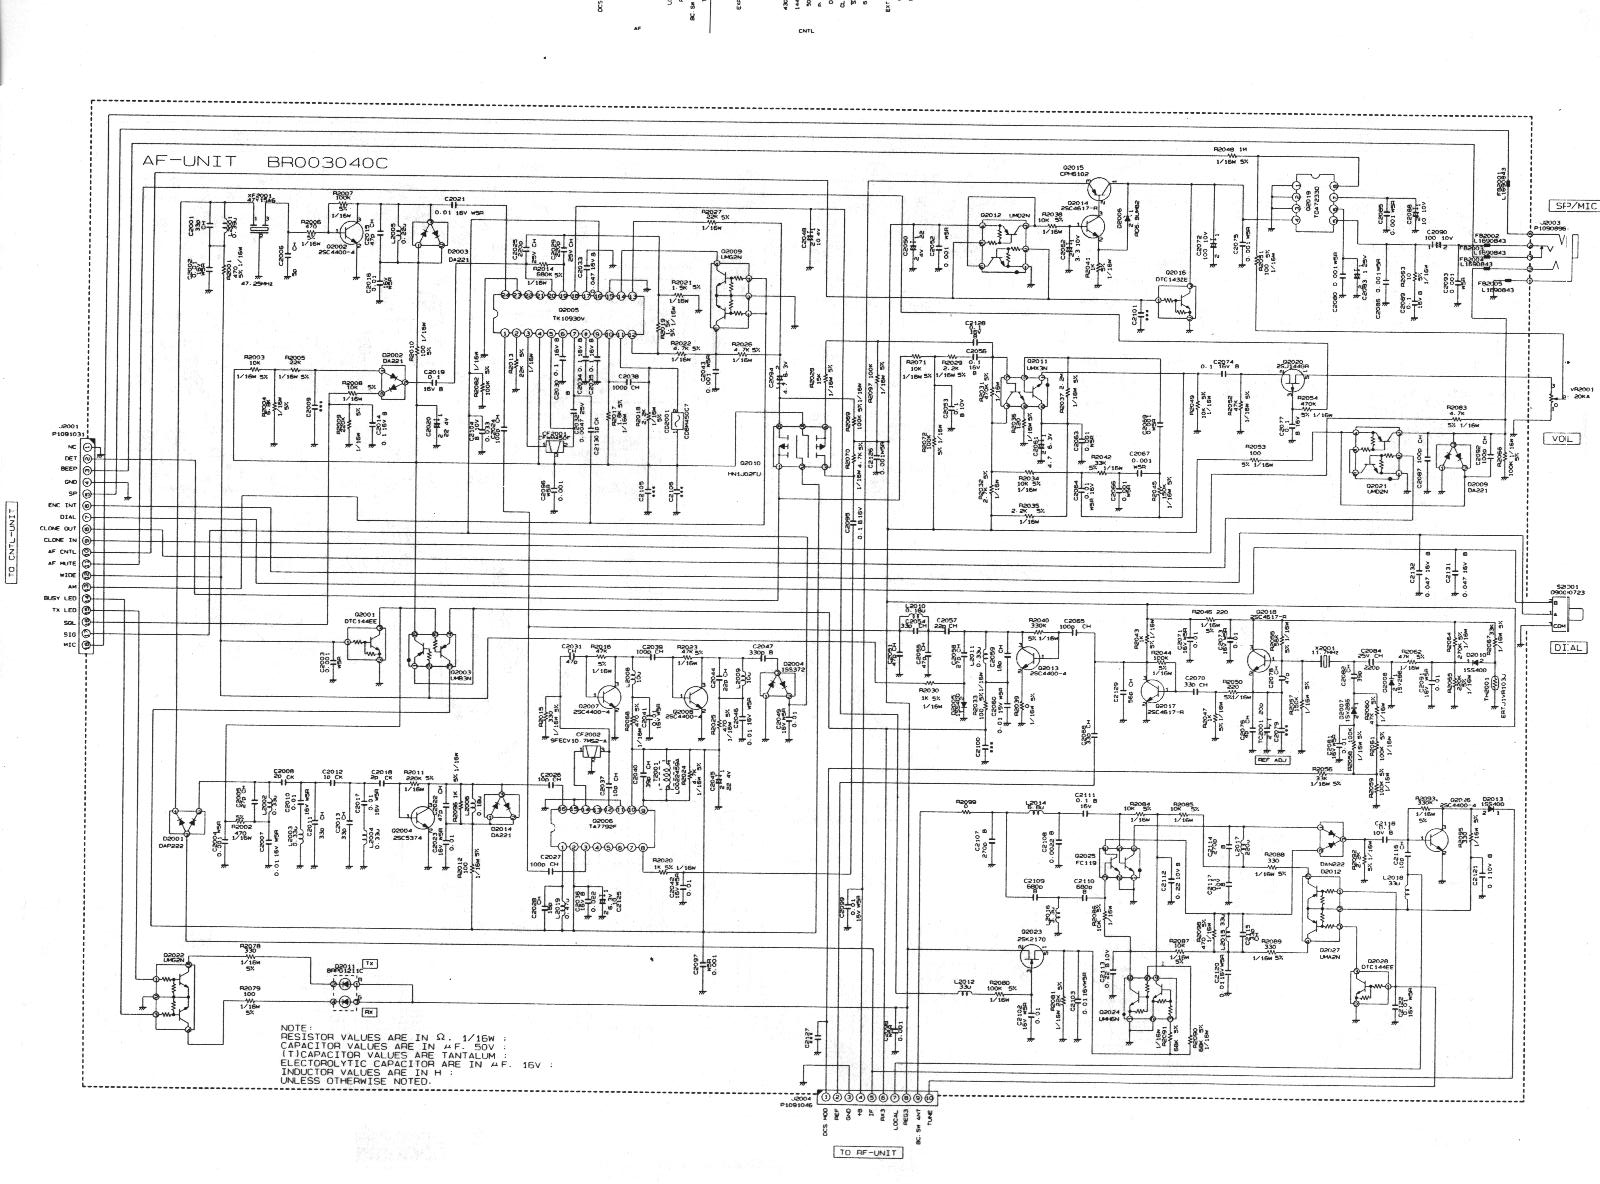 YAESU VX 5 Schematic a index of pub radio_manuals yaesu Yaesu G-450A at readyjetset.co